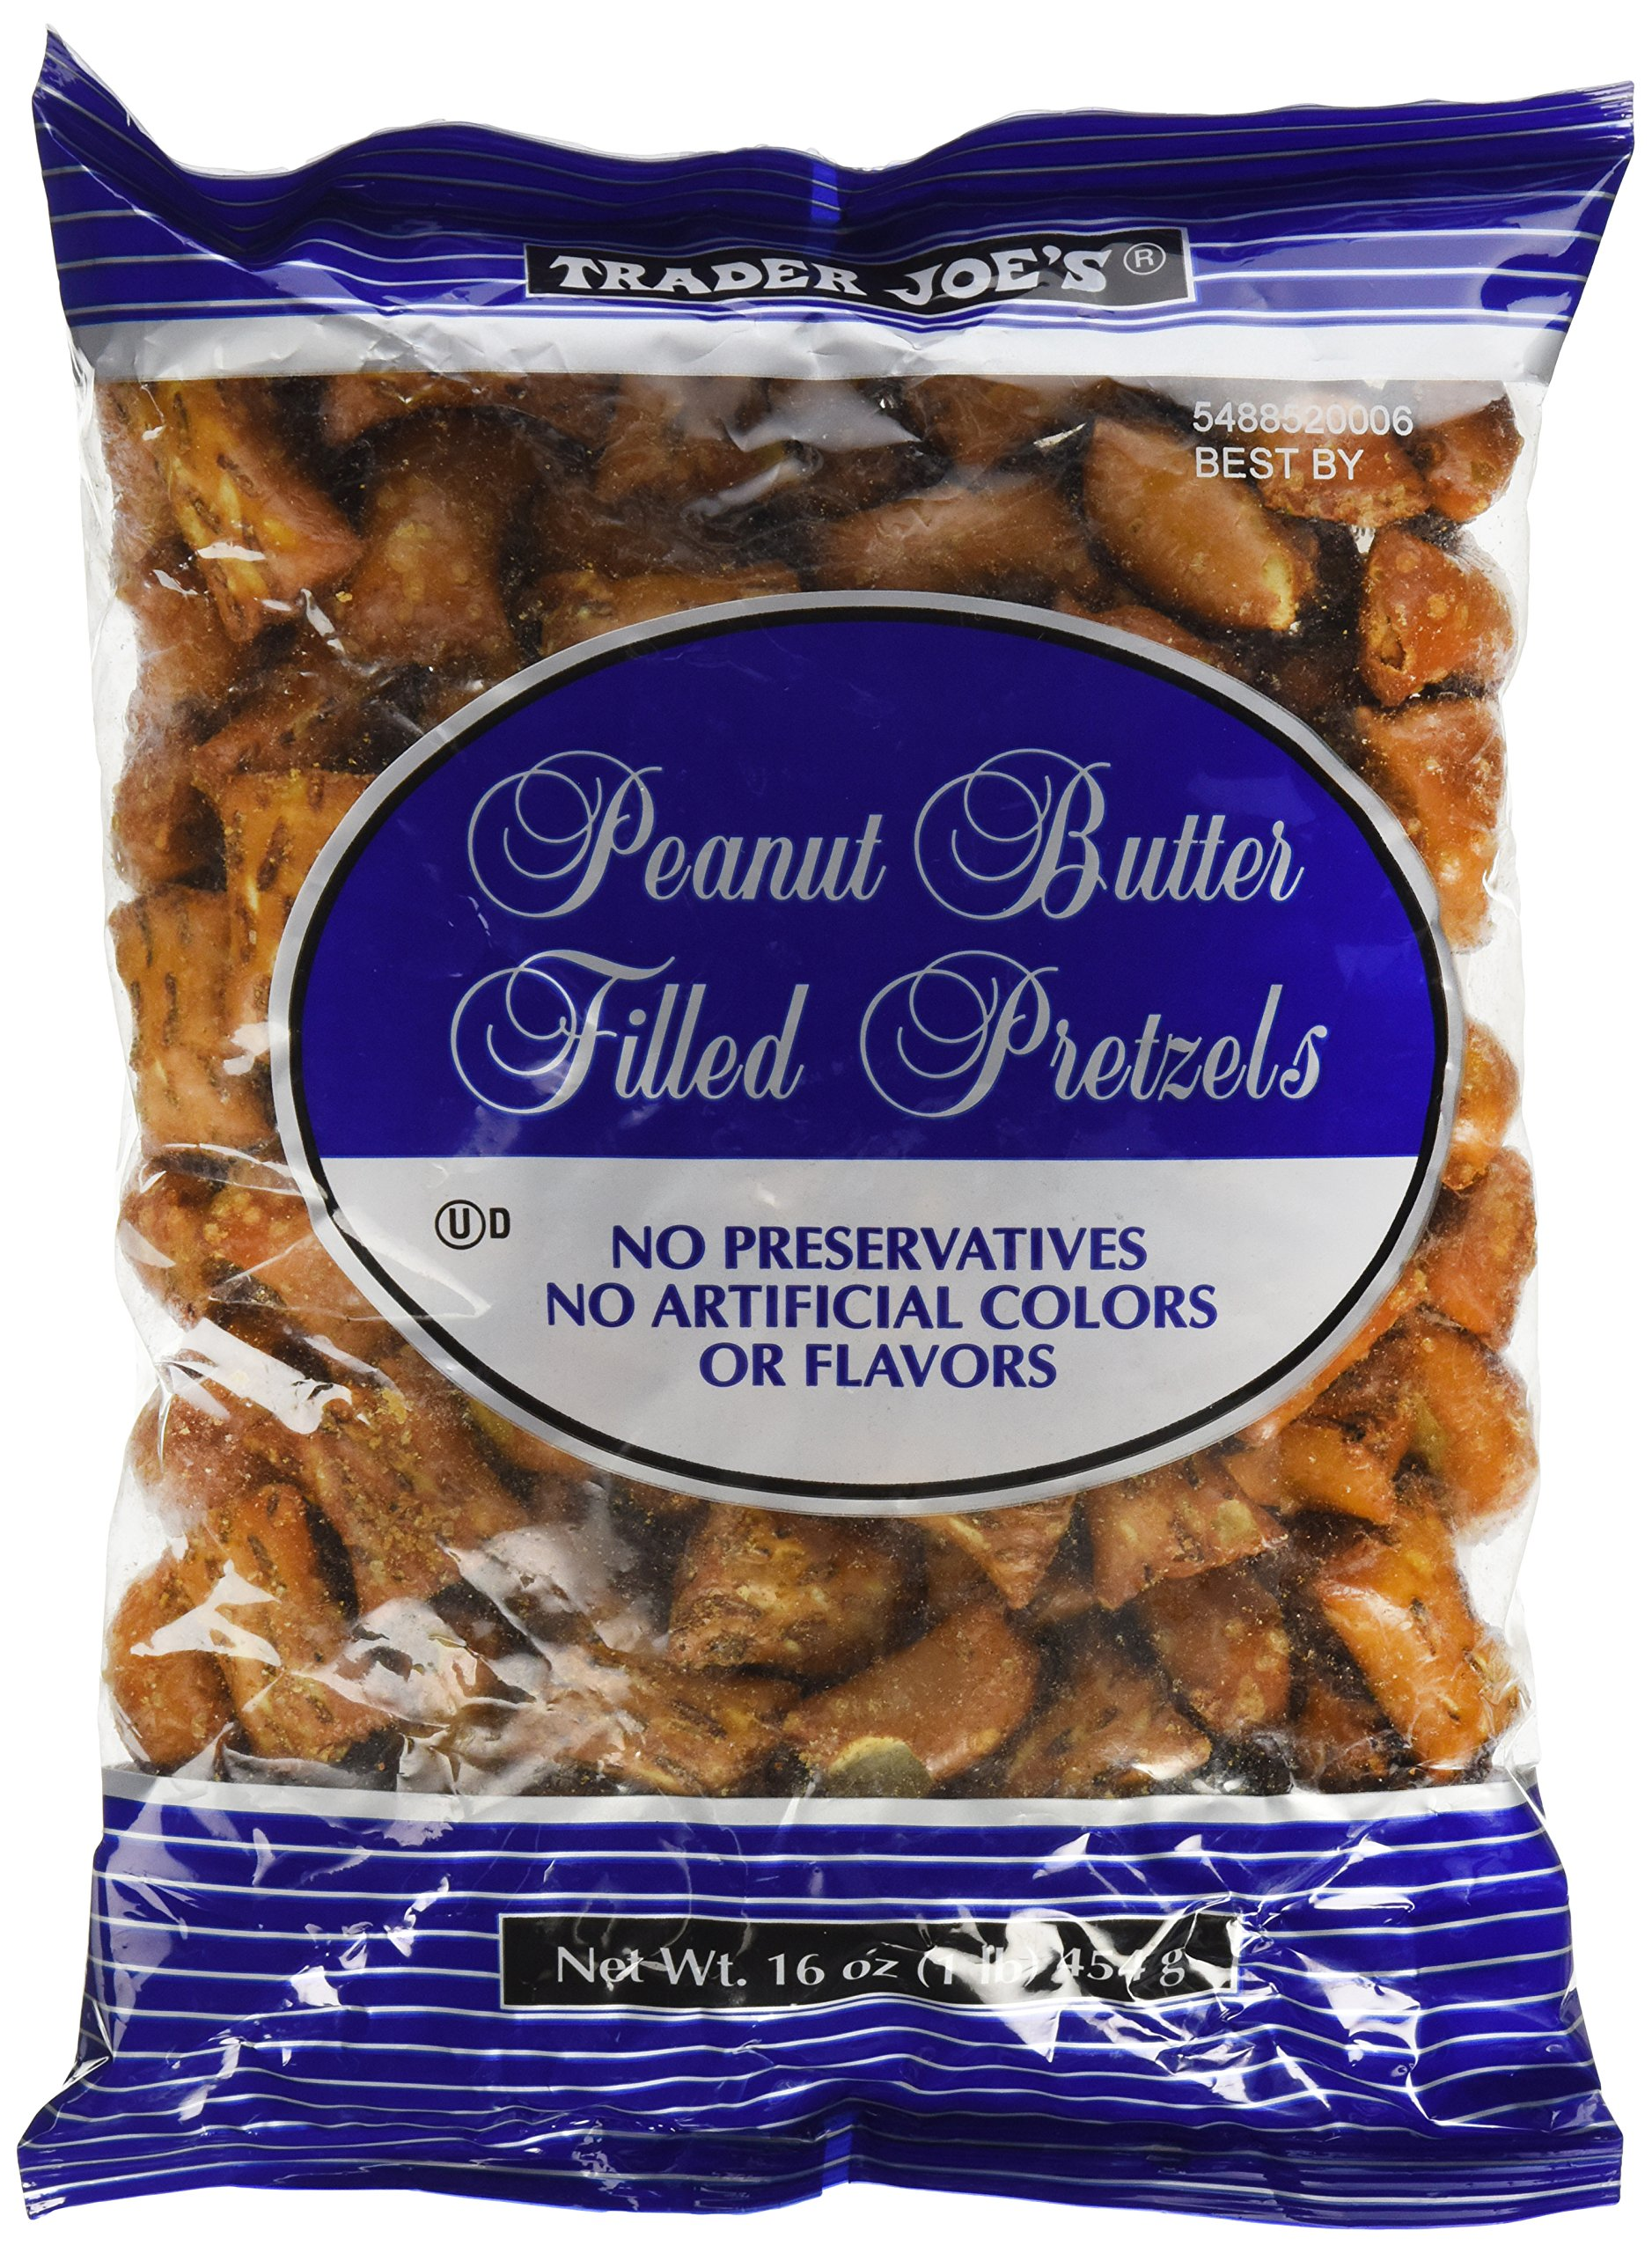 Trader Joe's Peanut Butter Filled Pretzels (2 pk) by Trader Joe's